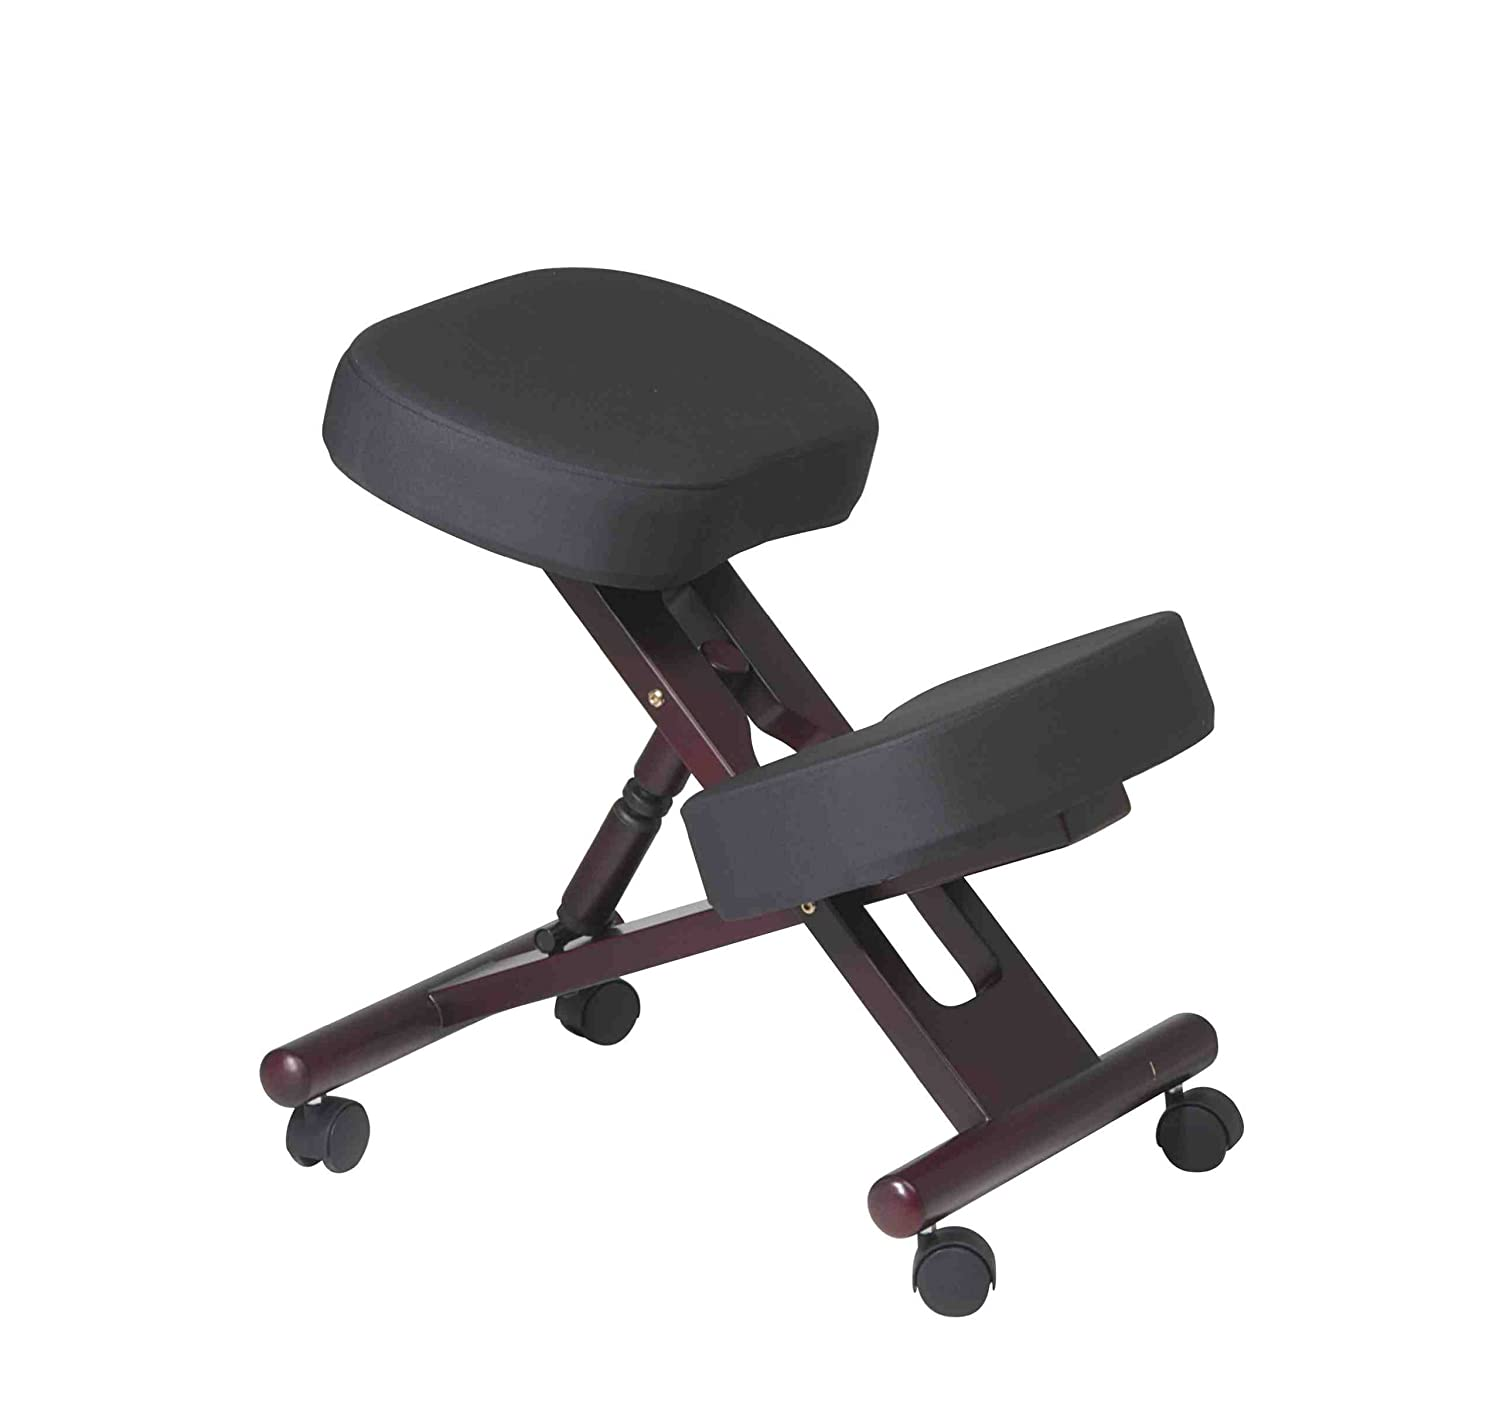 Ergonomic office chair kneeling posture - Amazon Com Office Star Ergonomically Designed Knee Chair With Casters Memory Foam And Mahogany Finished Wood Base Black Kitchen Dining